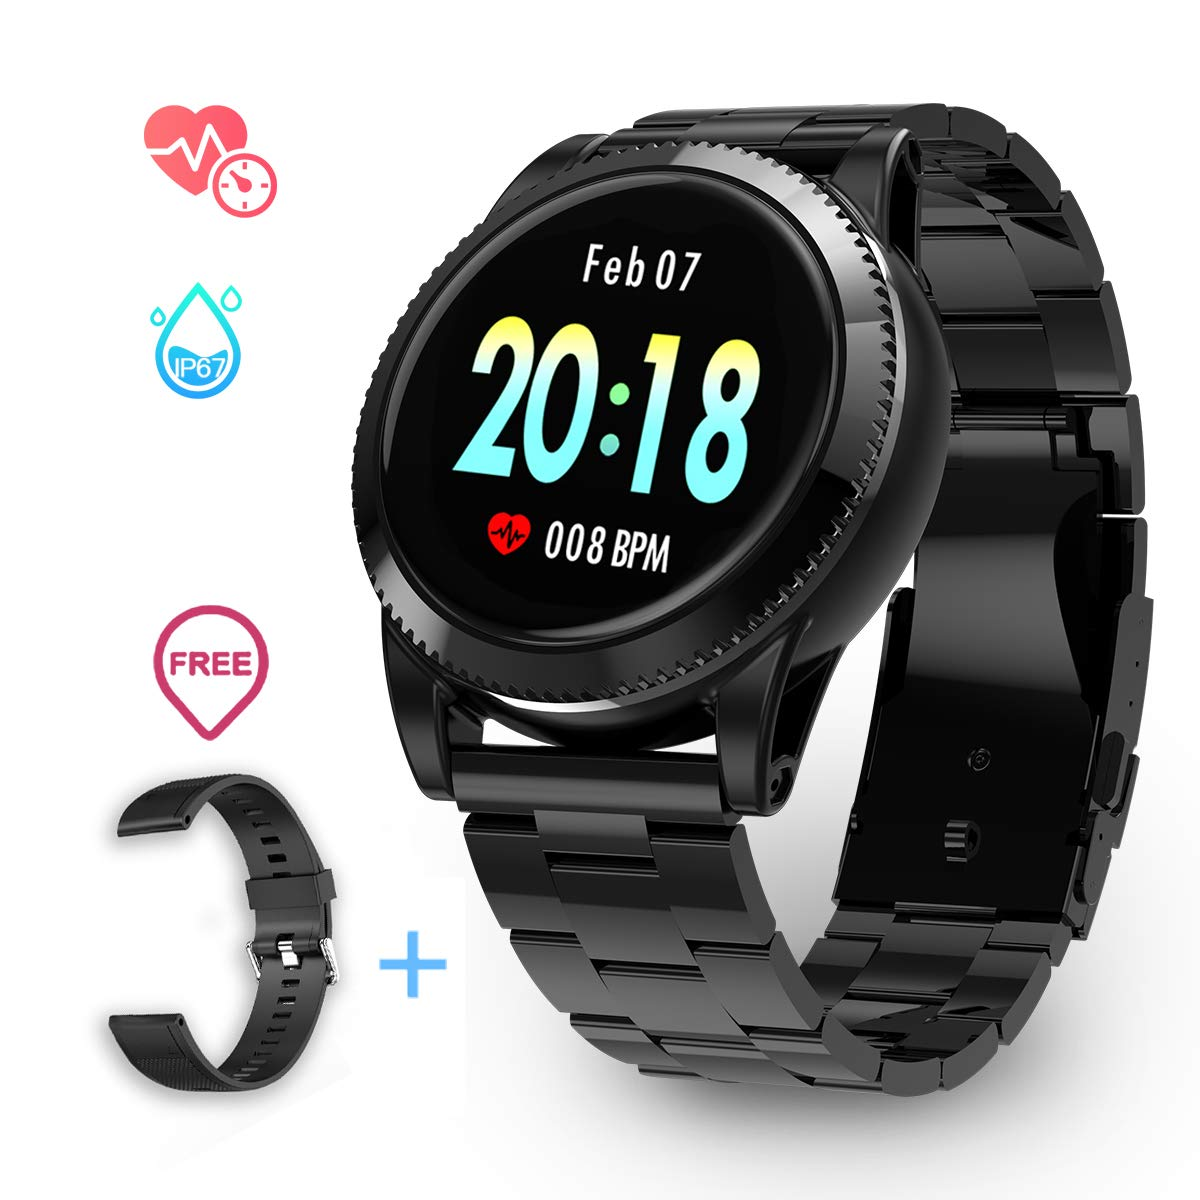 Smart Watches GOKOO Bluetooth Sports Smart Watch For Men Women Waterproof IP67 Fitness Tracker With Blood Pressure Heart Rate Monitor Pedometer Call Reminder Remote Camera Music For Android IPhone